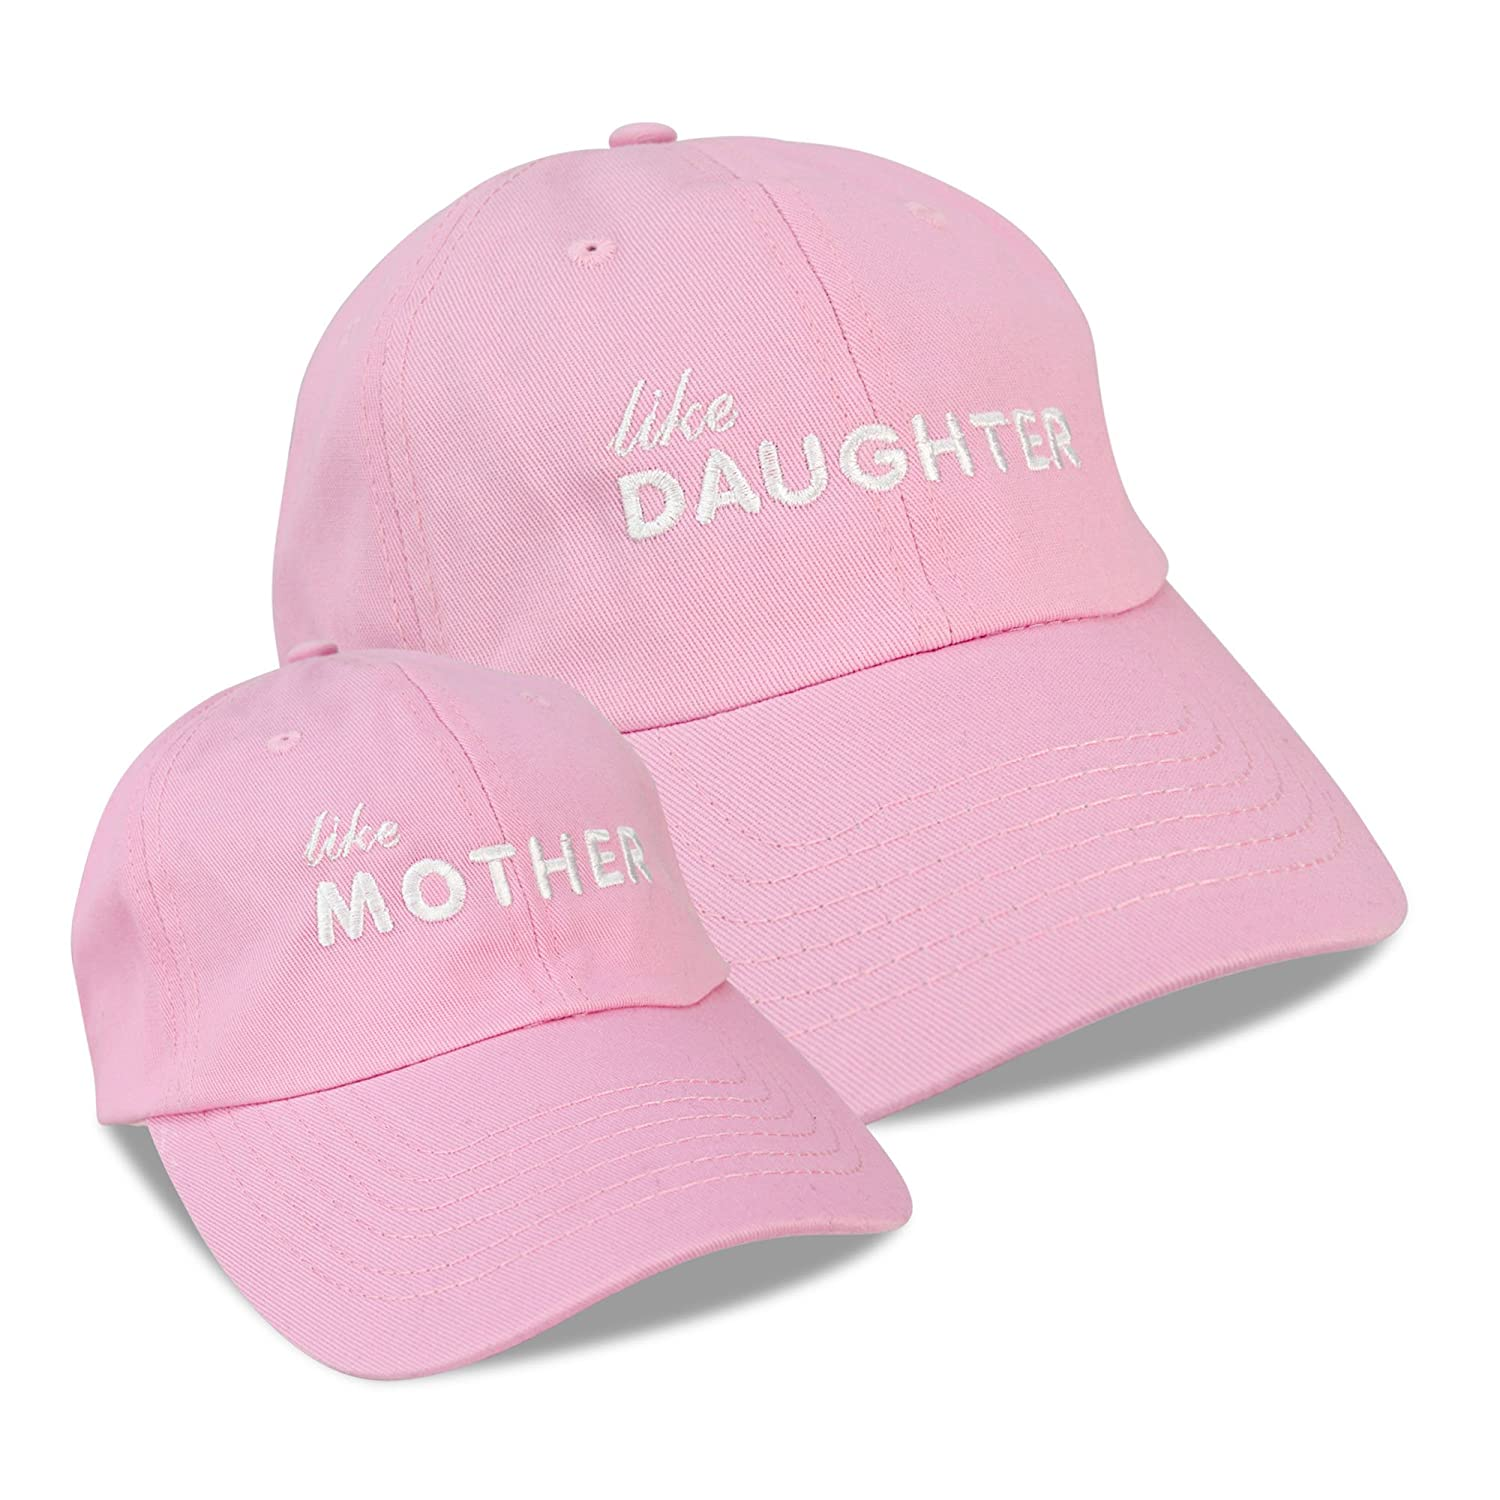 6cfc0a9f Amazon.com: DALIX Mommy and Me Embroidered Hats Dad Caps Like Mother Like  Daughter Hat Light Pink: Clothing